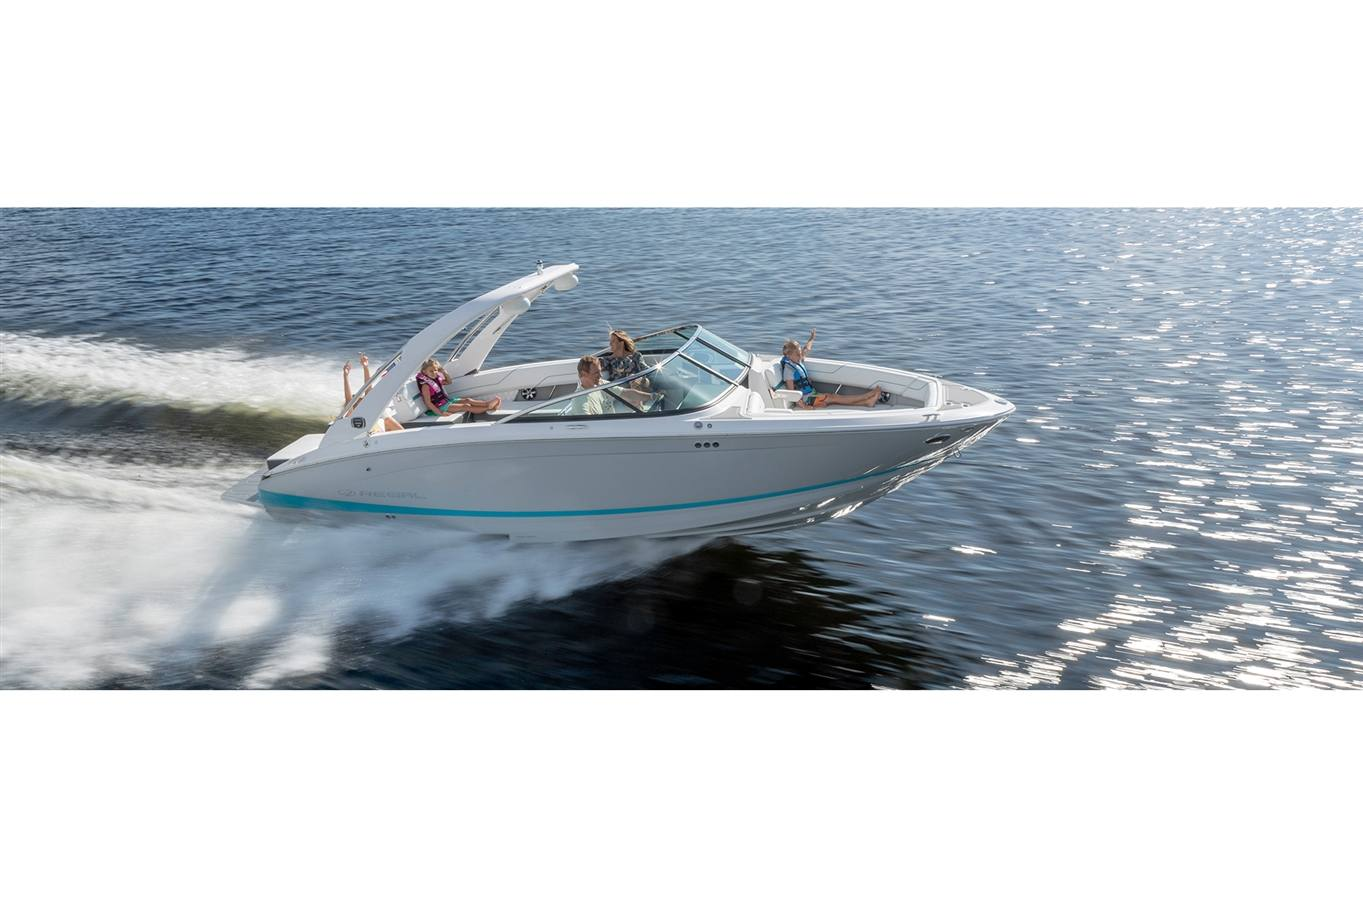 2019 Regal LS6 for sale in Colchester, VT  Saba Marine